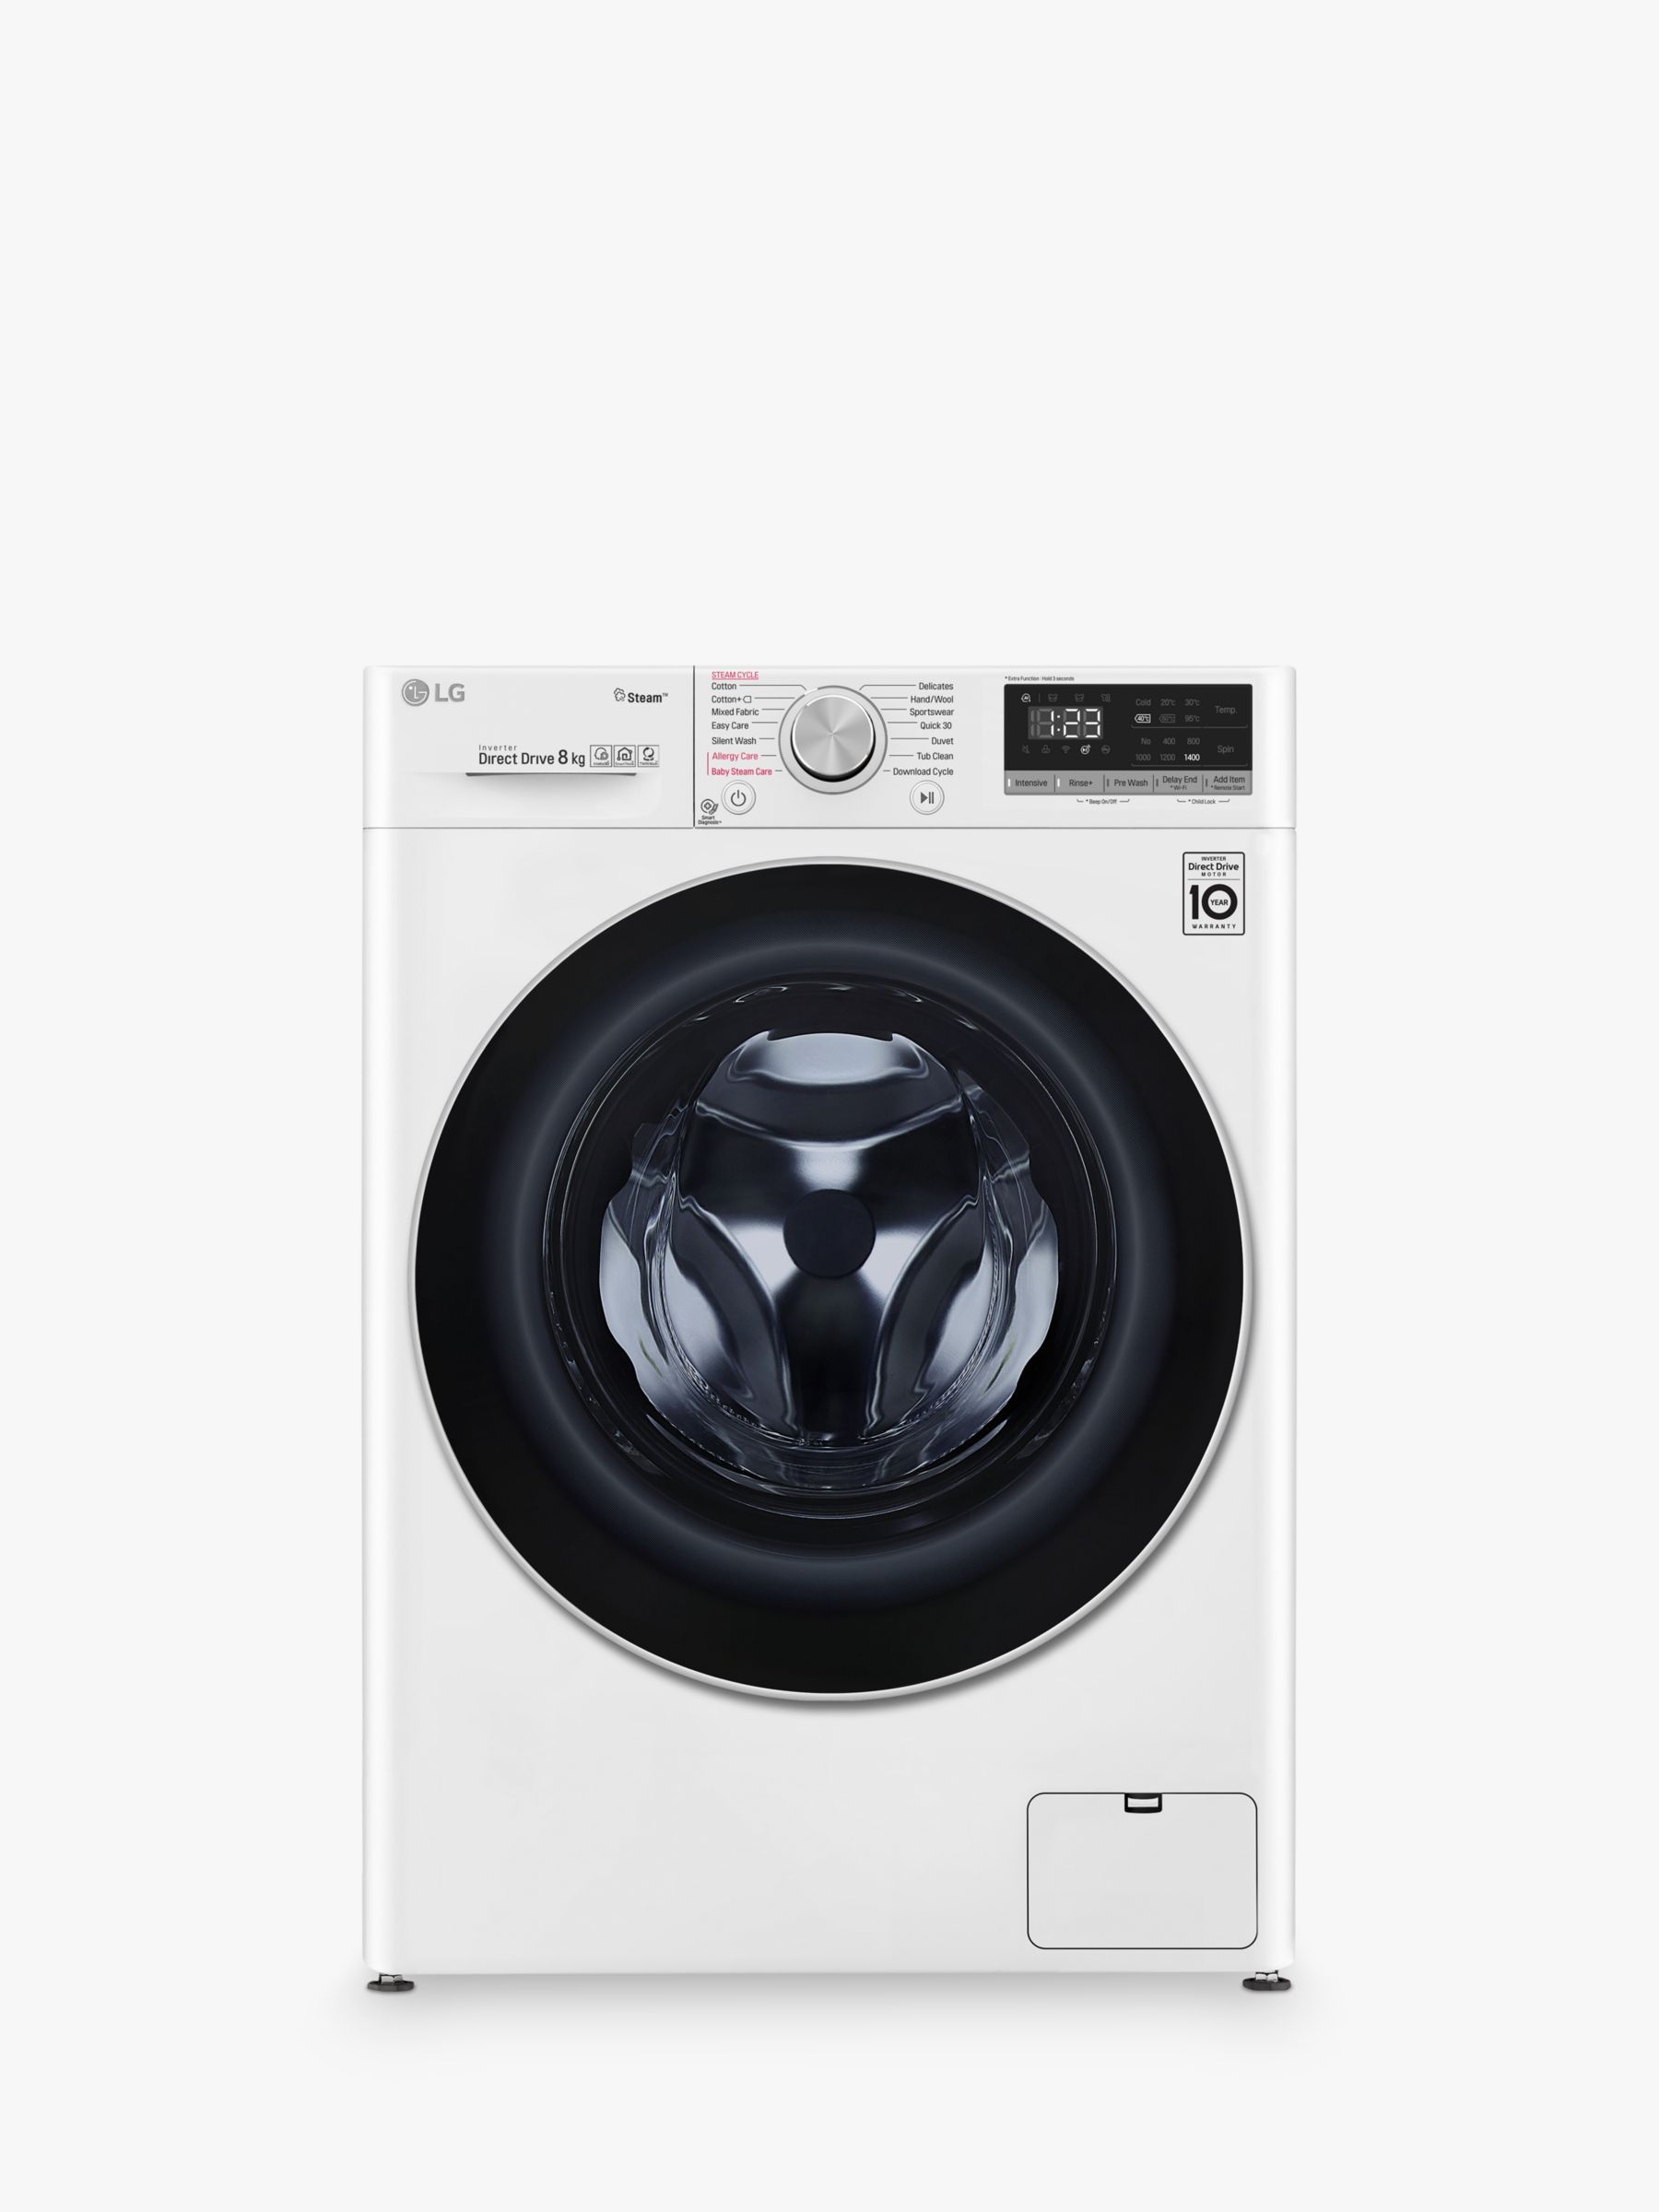 LG LG F4V508WS Freestanding Washing Machine, 8kg Load, A+++ Energy Rating, 1400rpm Spin, White